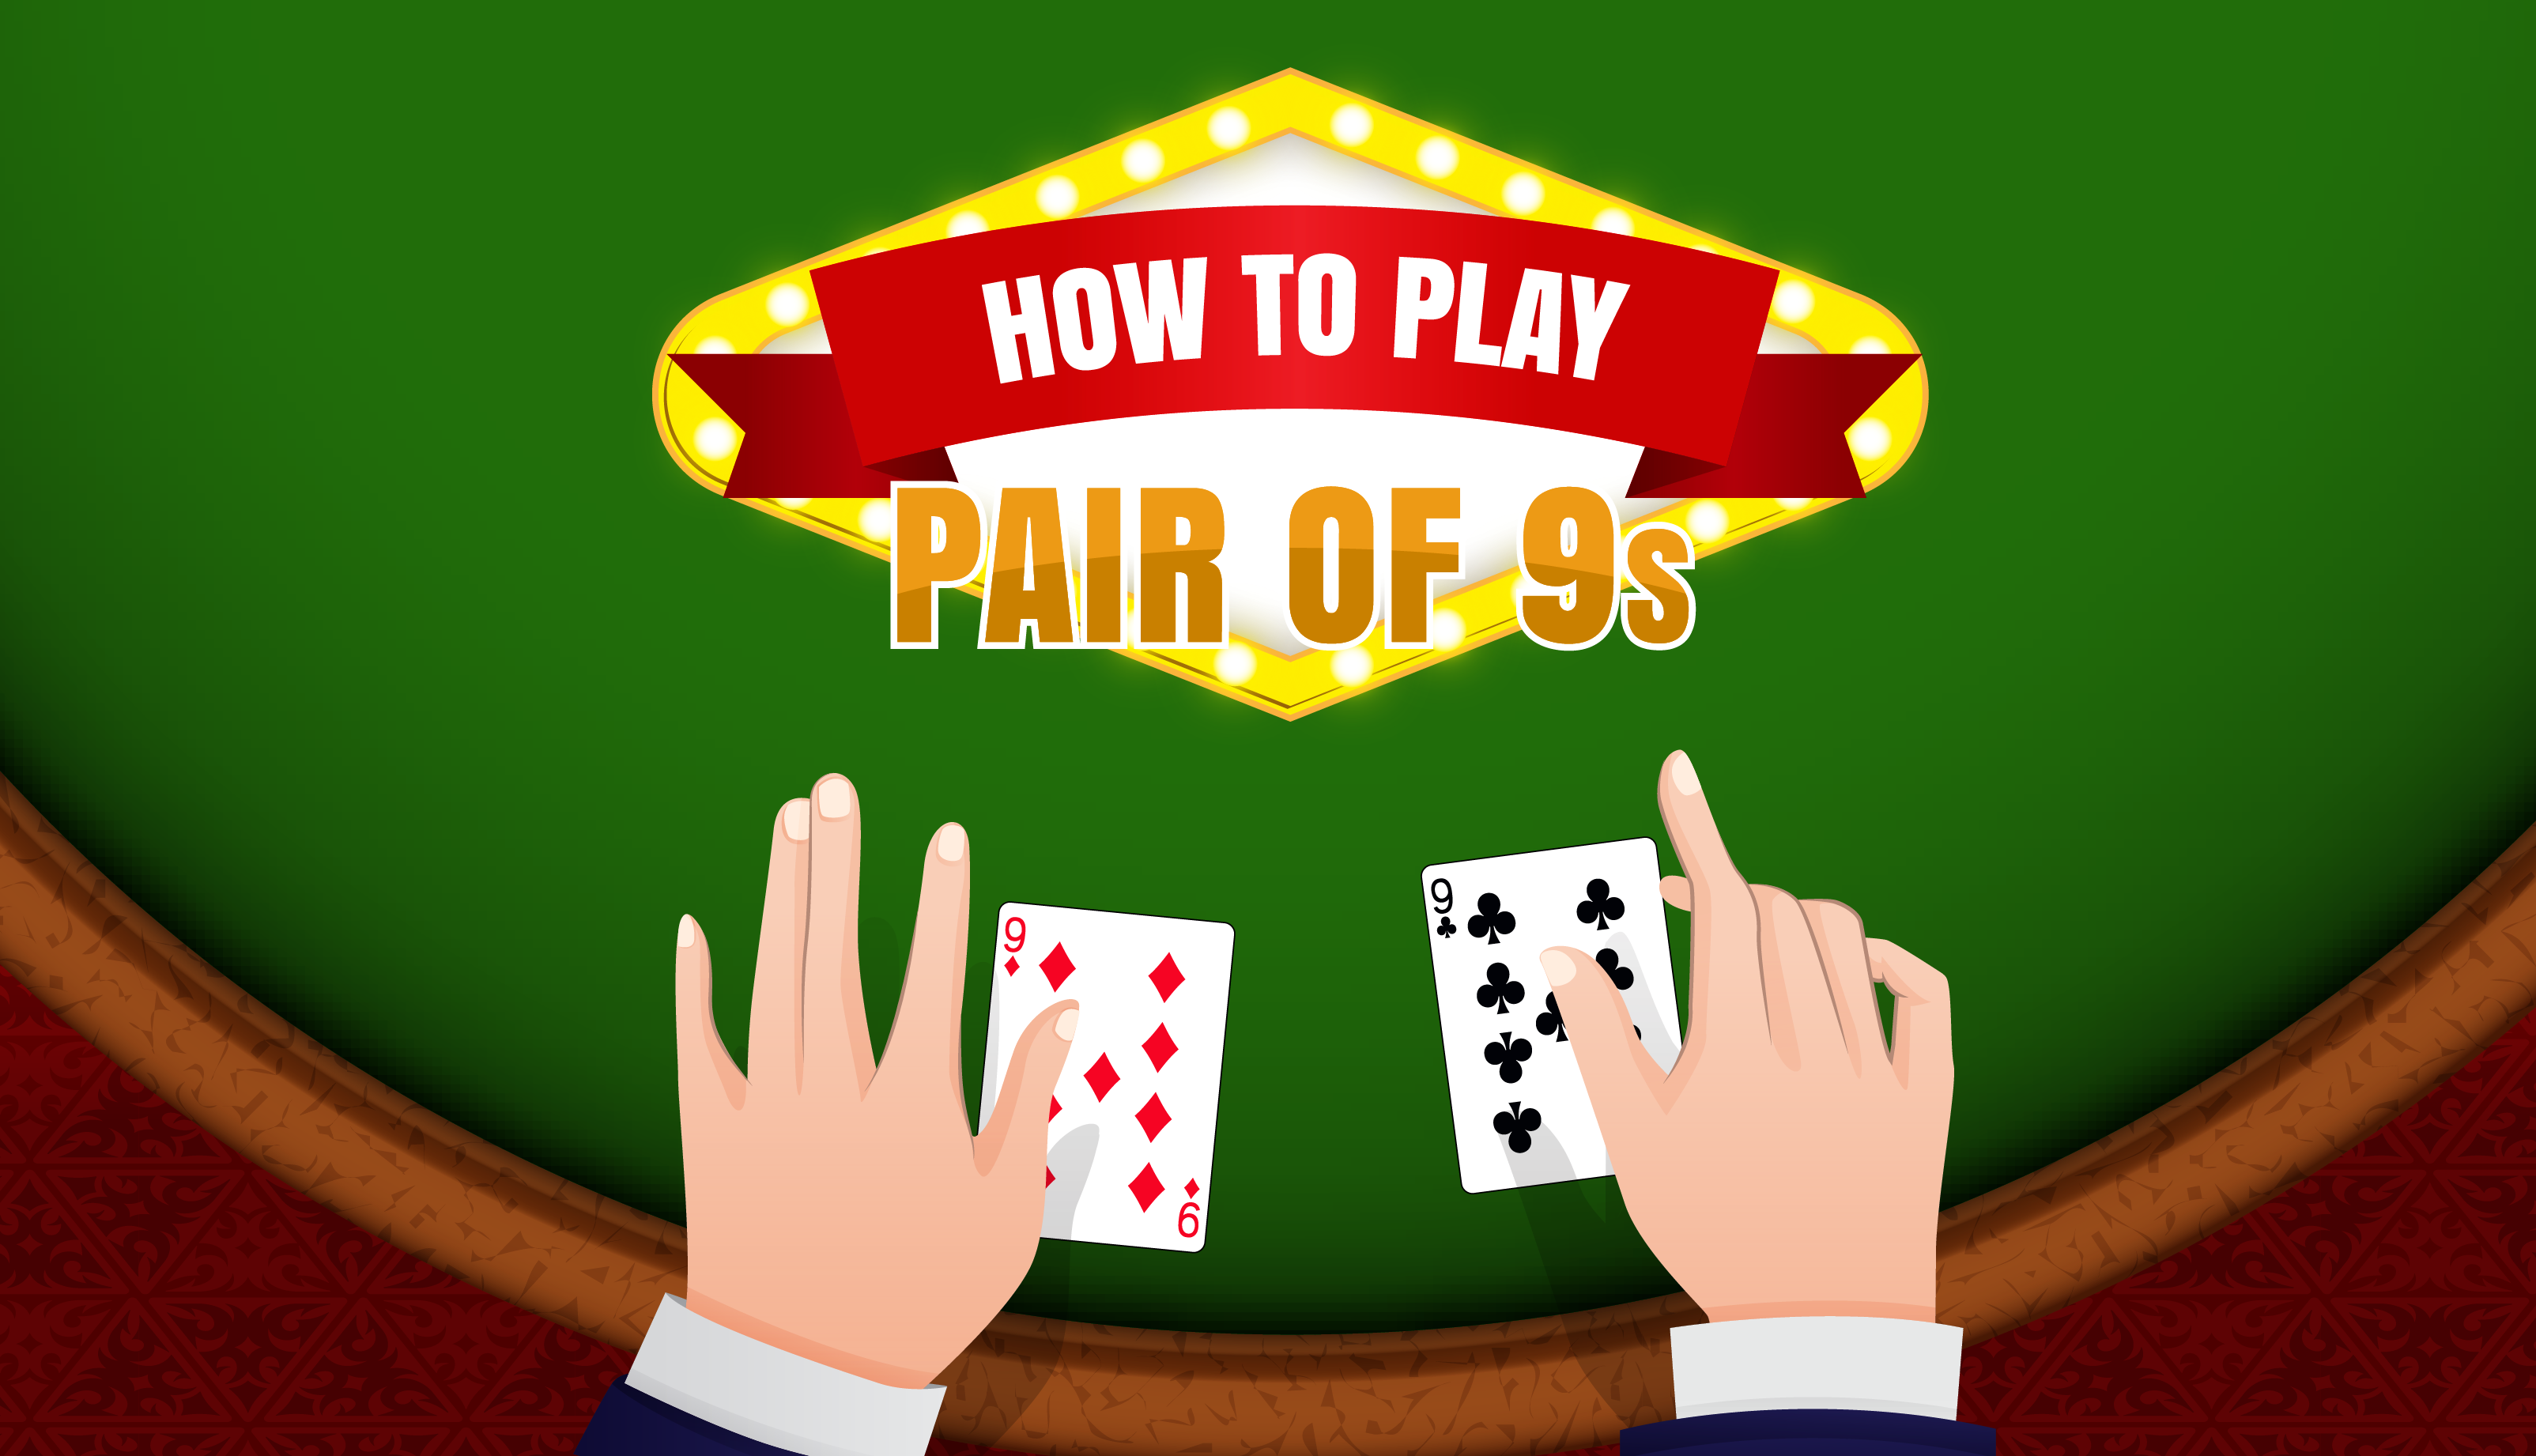 How to Play a Pair of nines in Blackjack